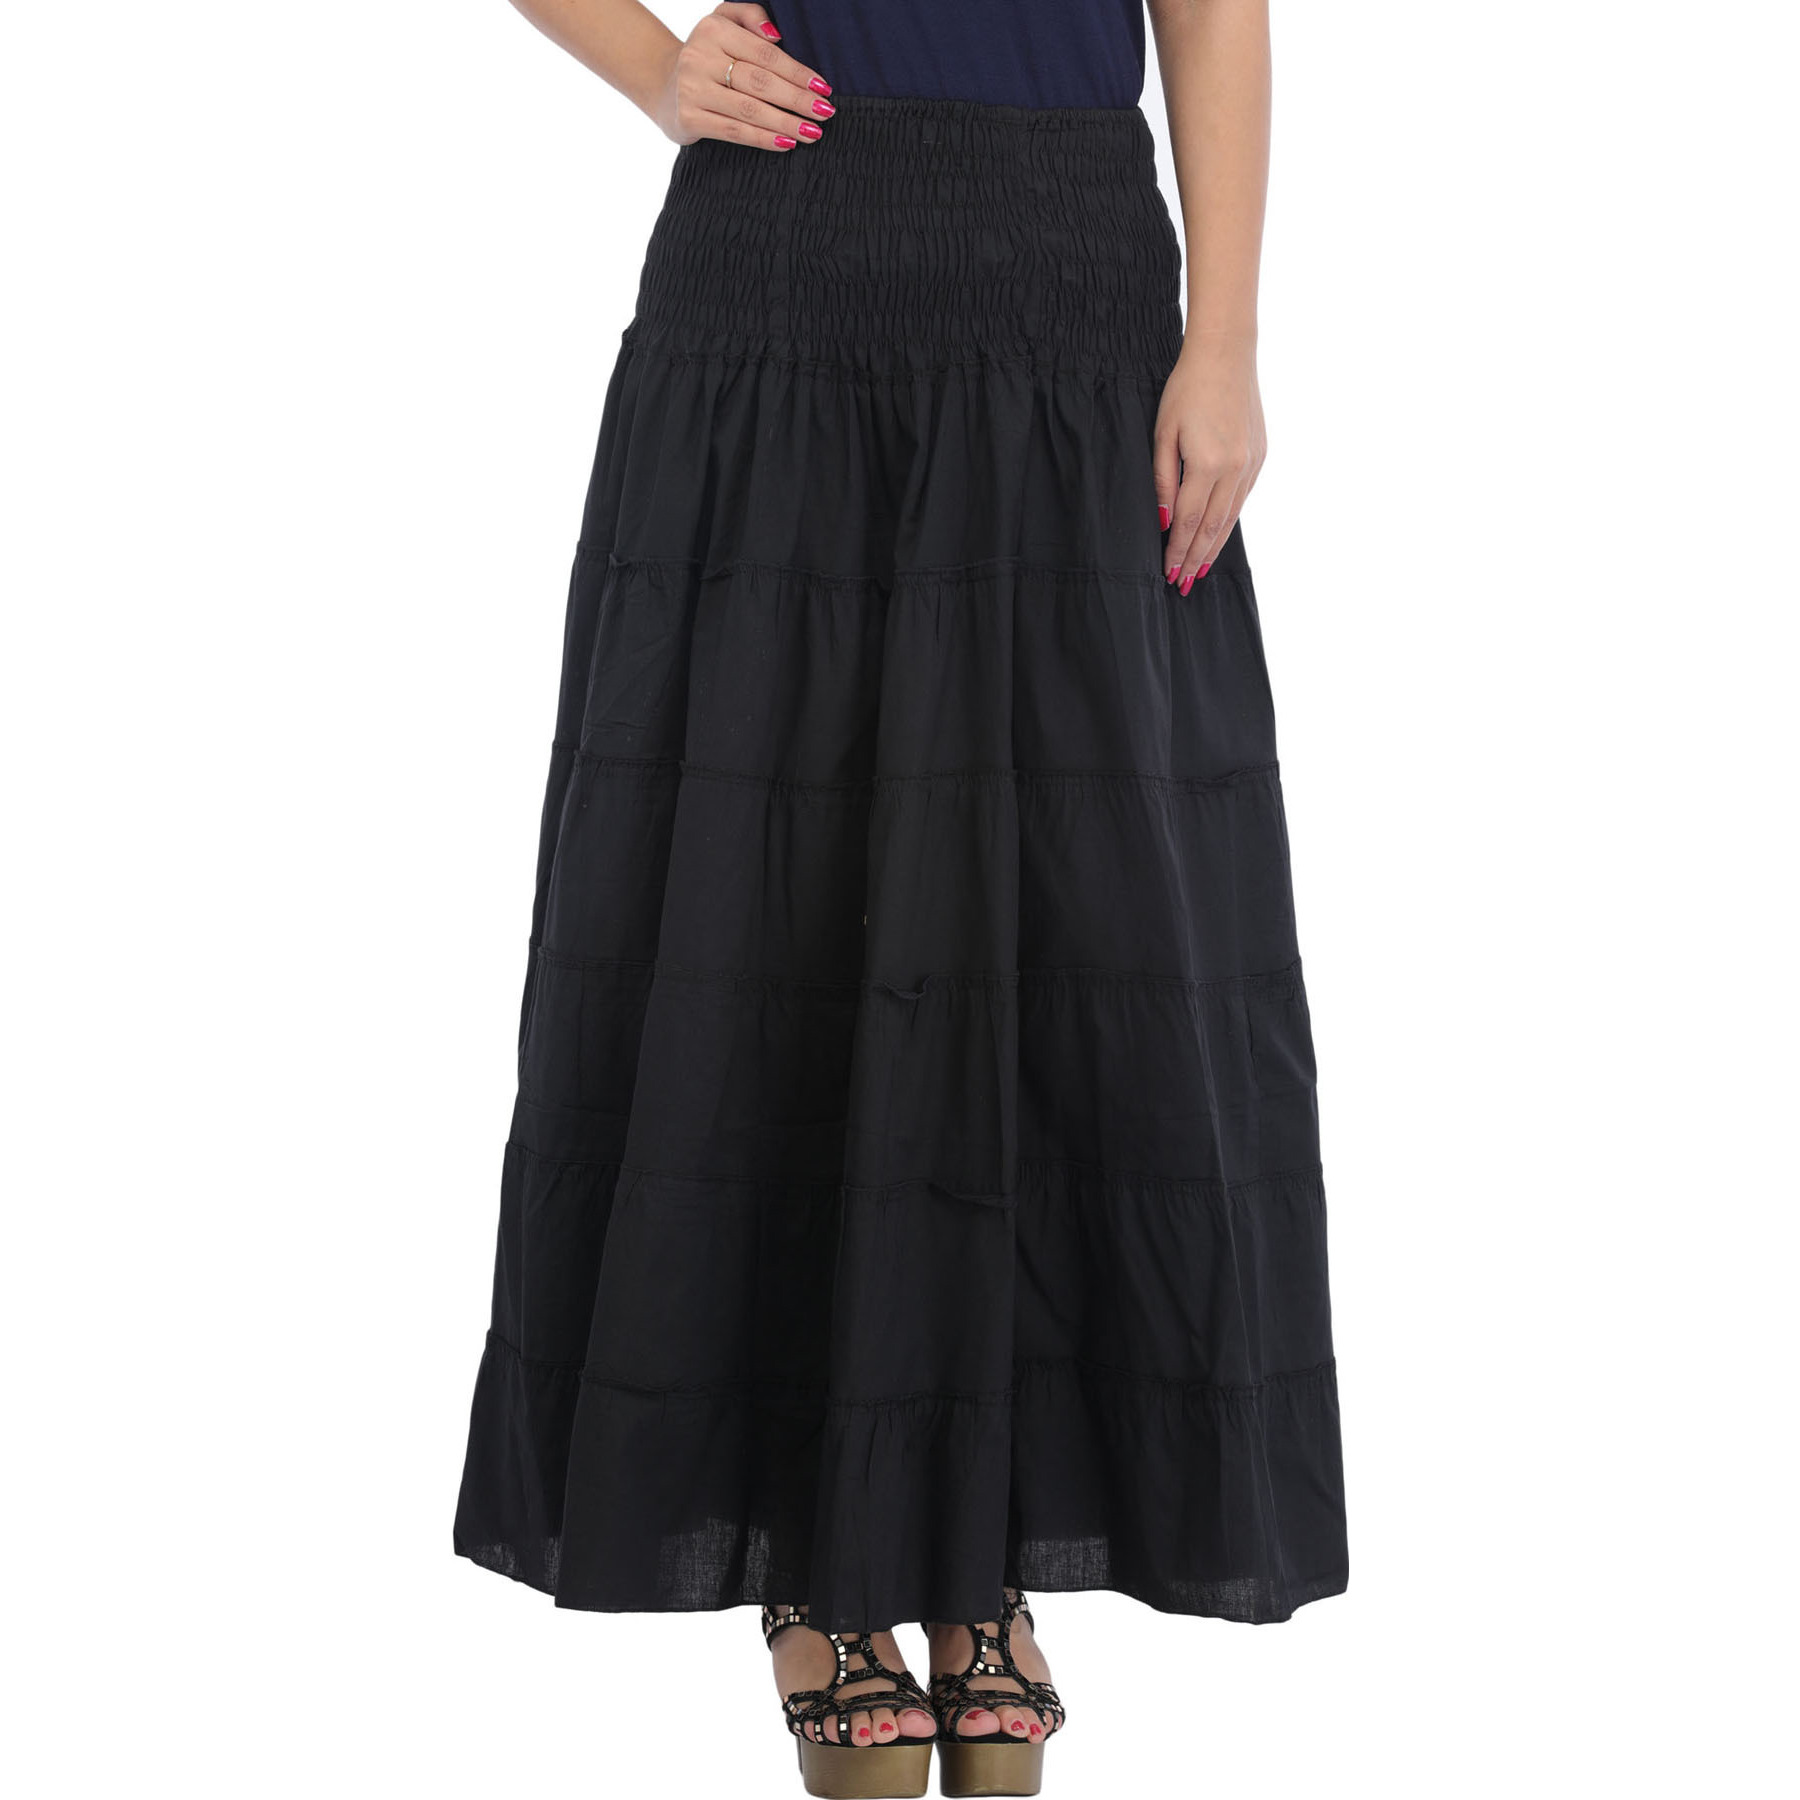 Jet-Black Long Skirt with Wide Elastic Waist